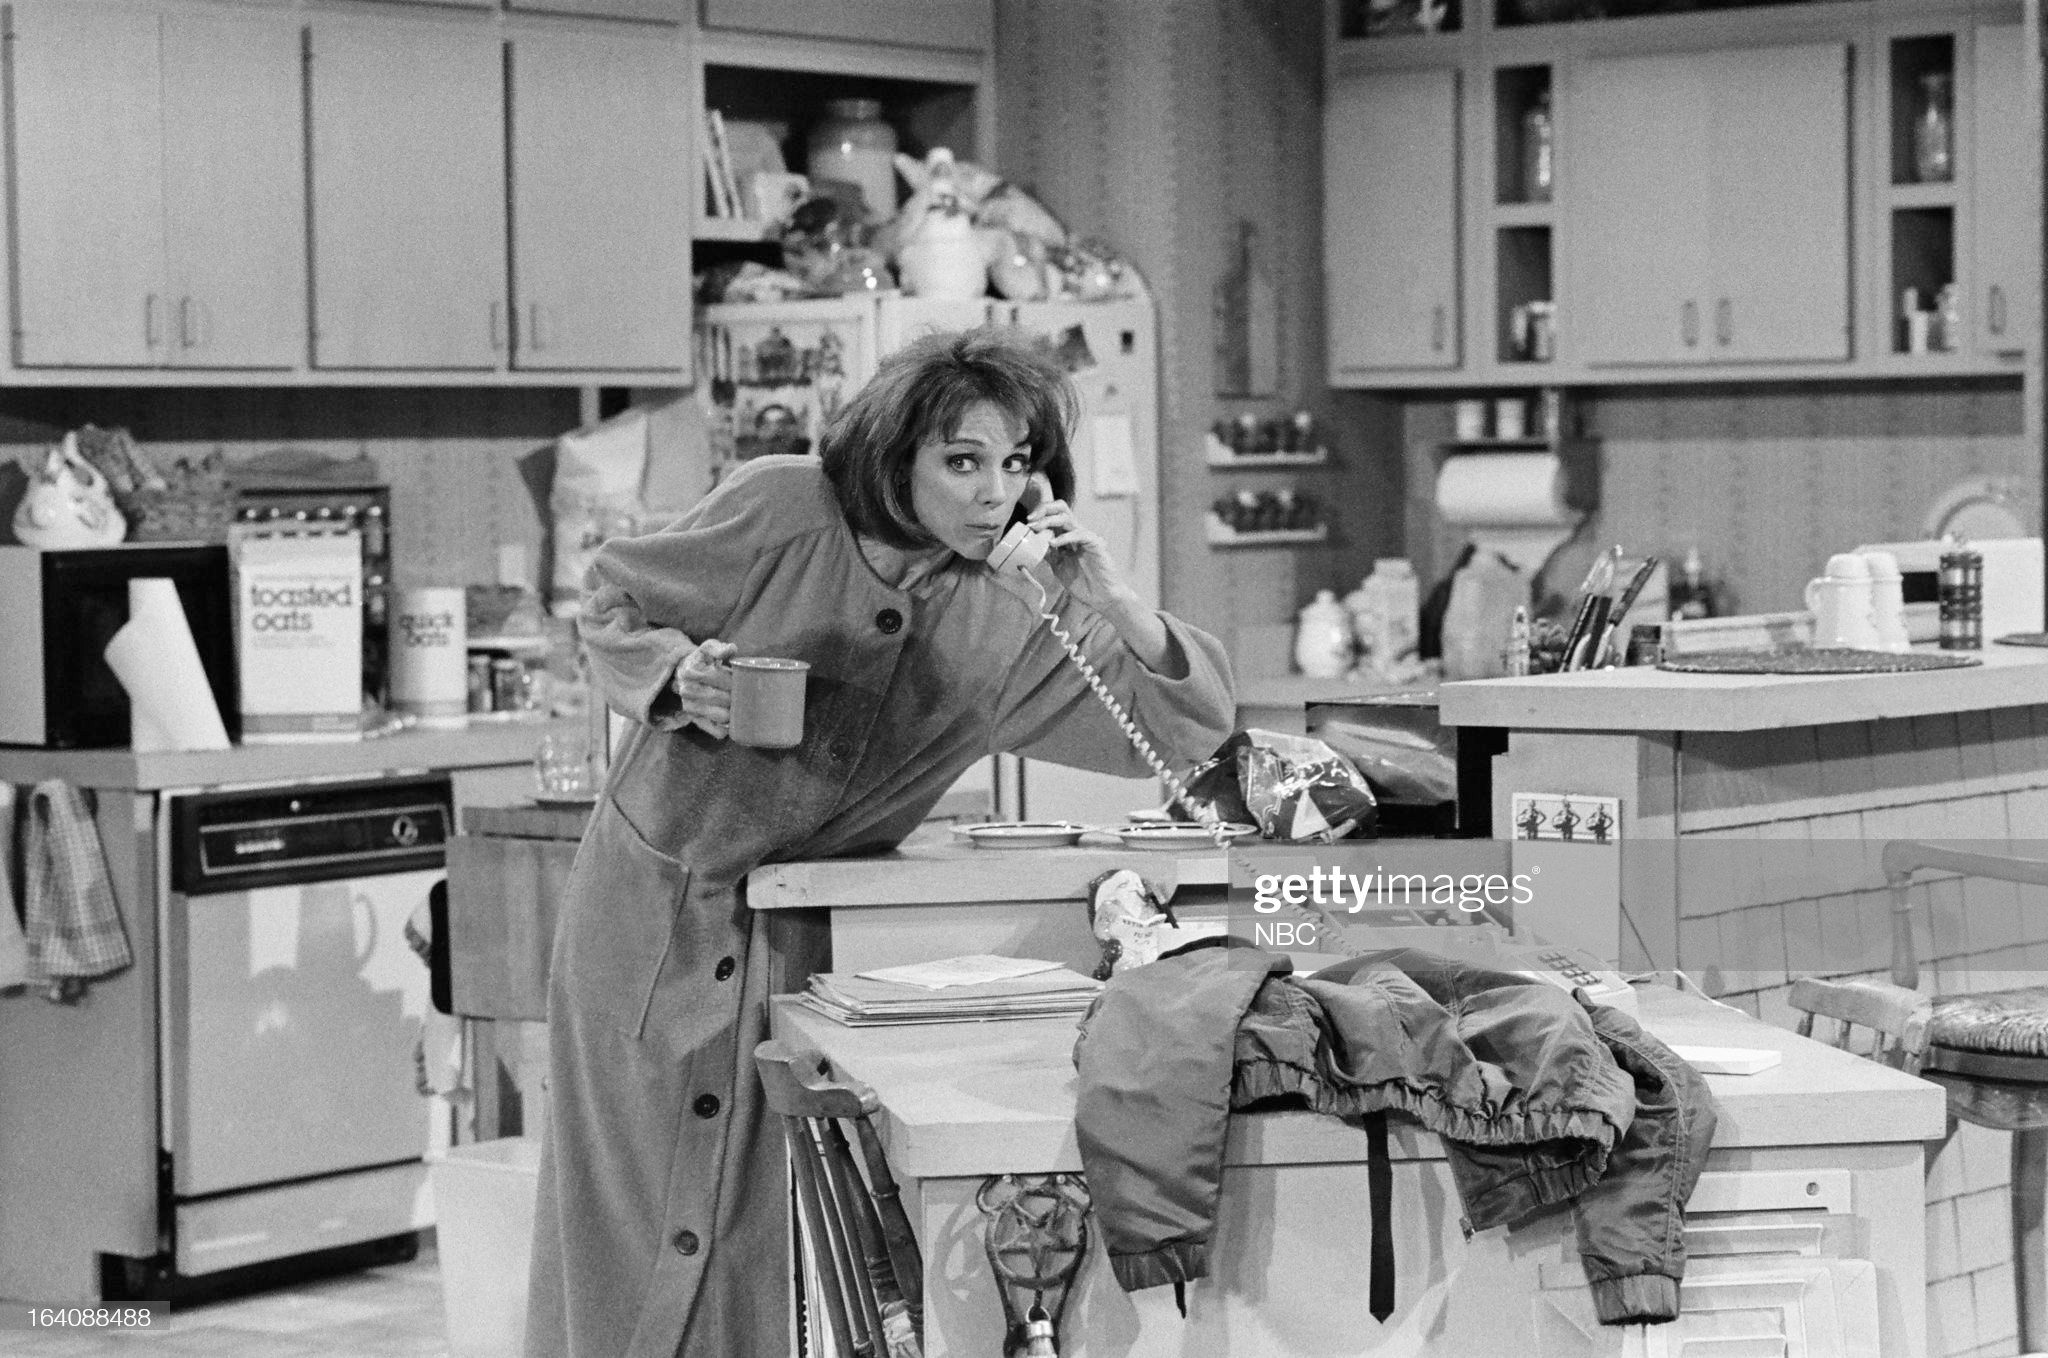 full-moon-episode-201-pictured-valerie-harper-as-valerie-hogan-picture-id164088488